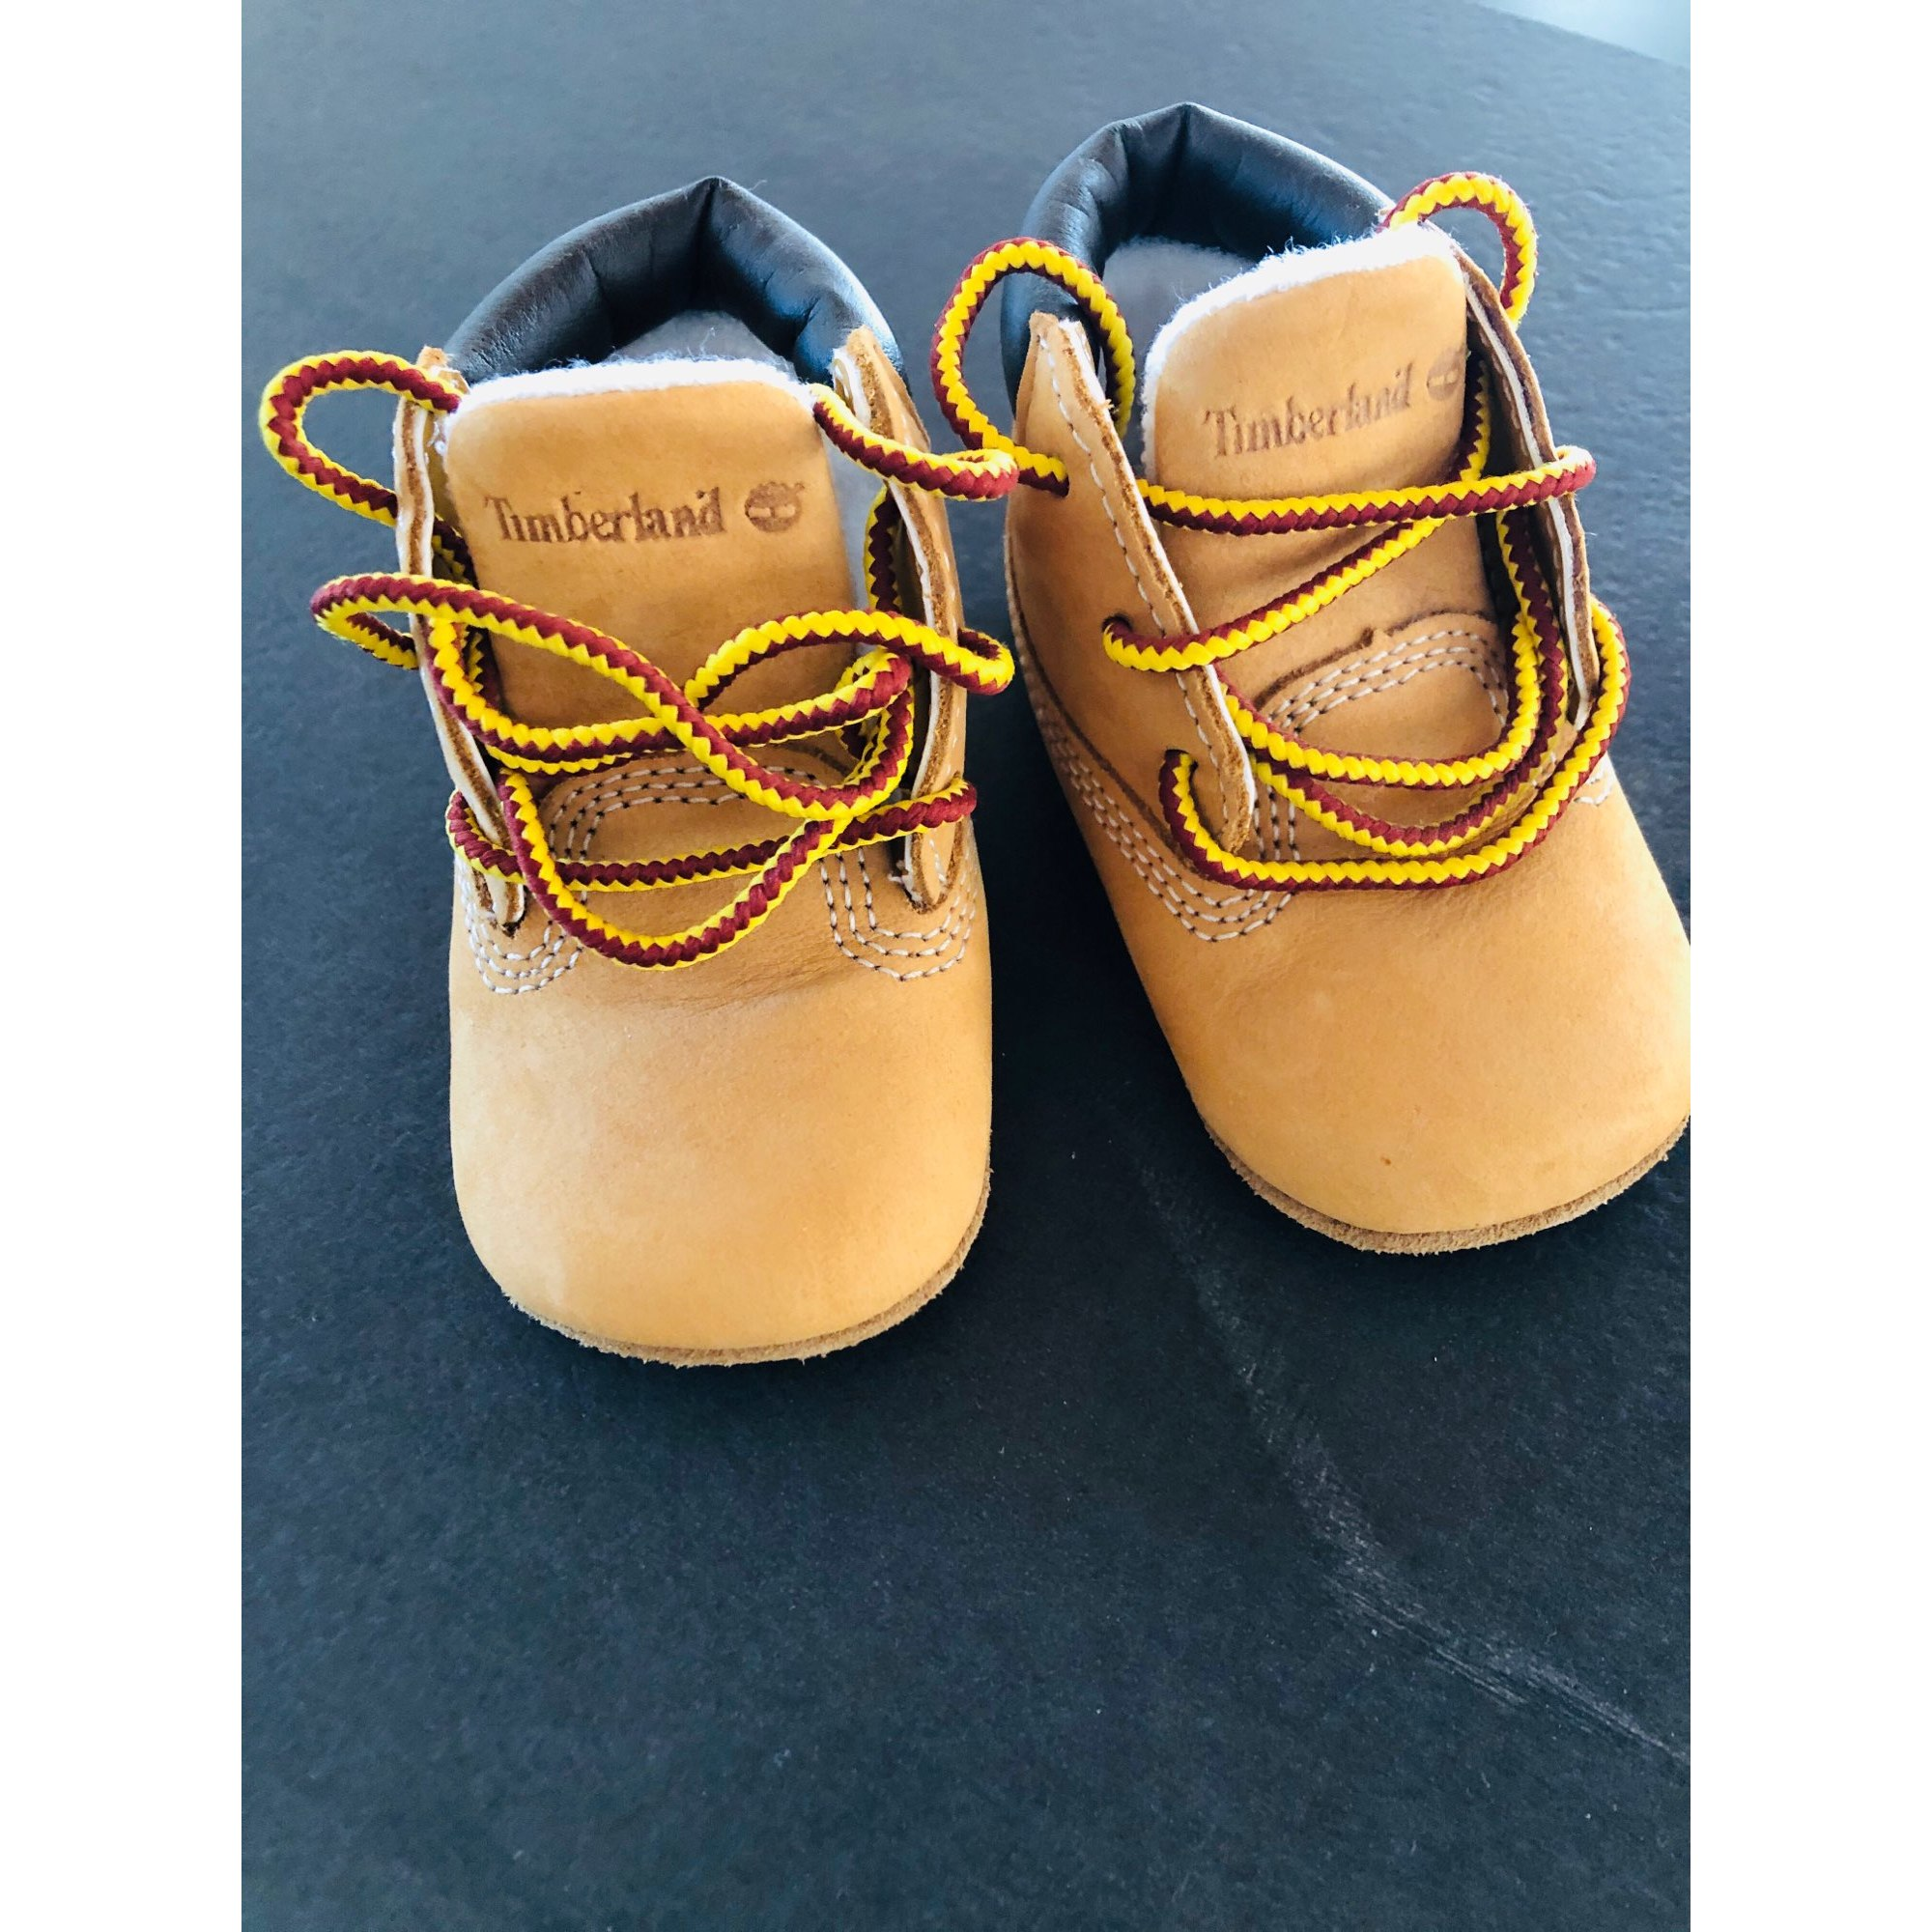 Lace Up Shoes TIMBERLAND Beige, camel